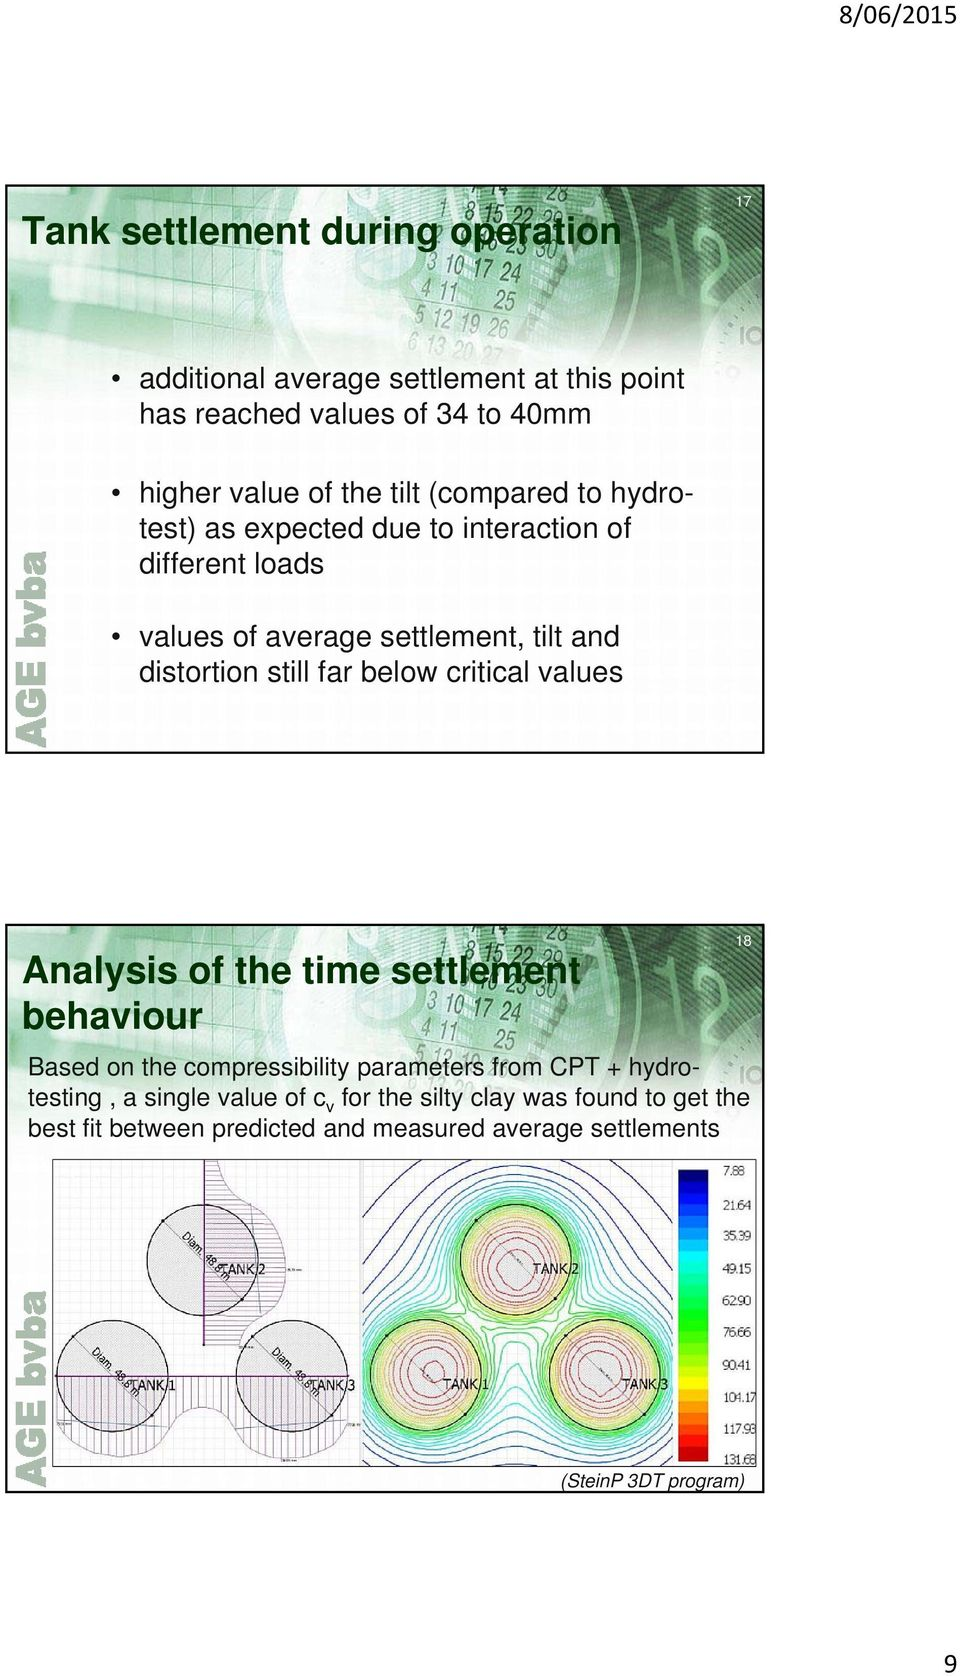 far below critical values Analysis of the time settlement behaviour Based on the compressibility parameters from CPT + hydrotesting, a